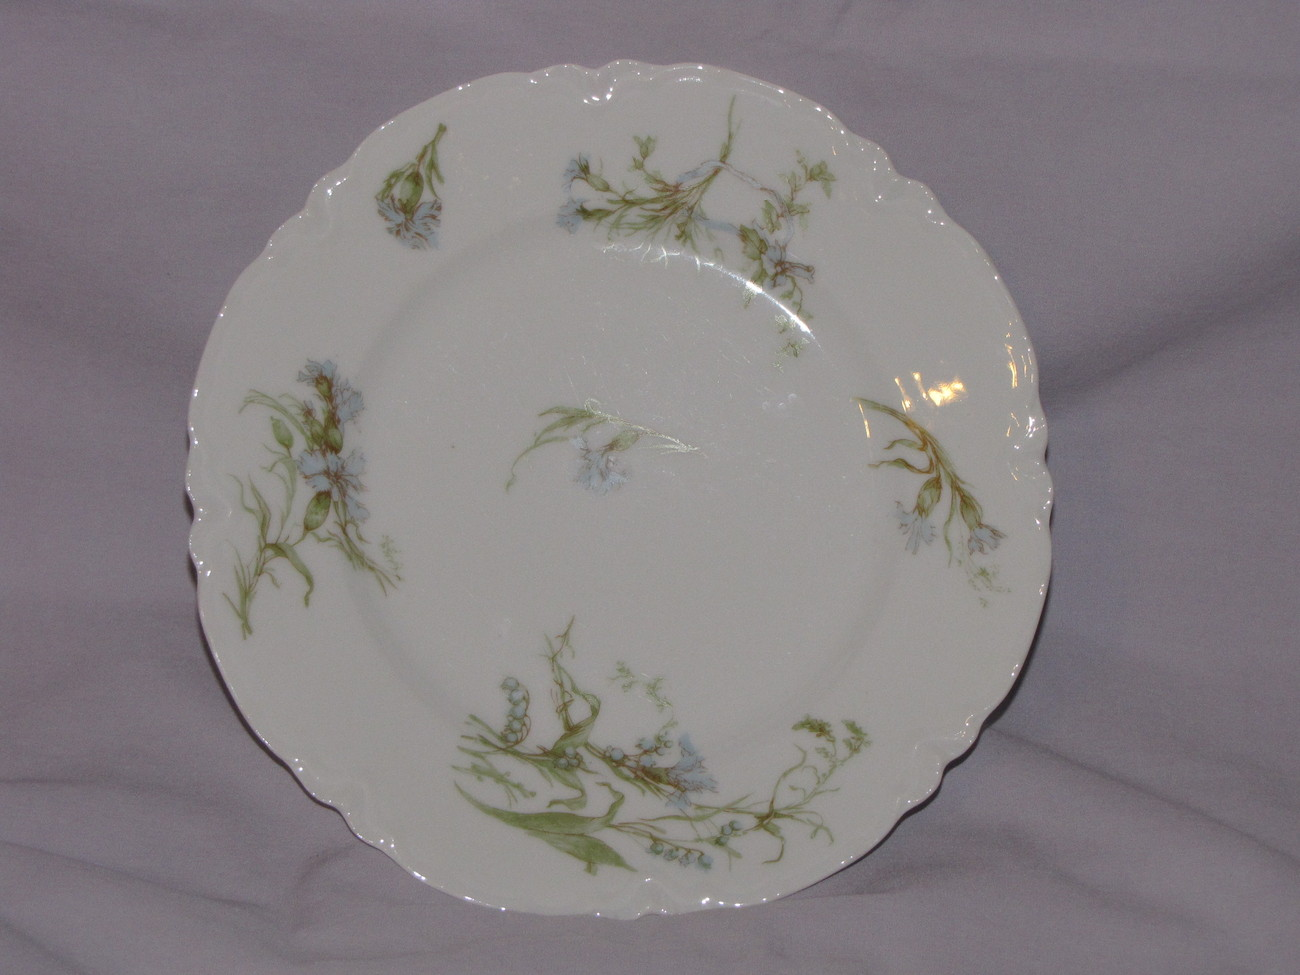 Hu0026Co L France/Haviland u0026 Co. Limoges Dinner Plate - Haviland